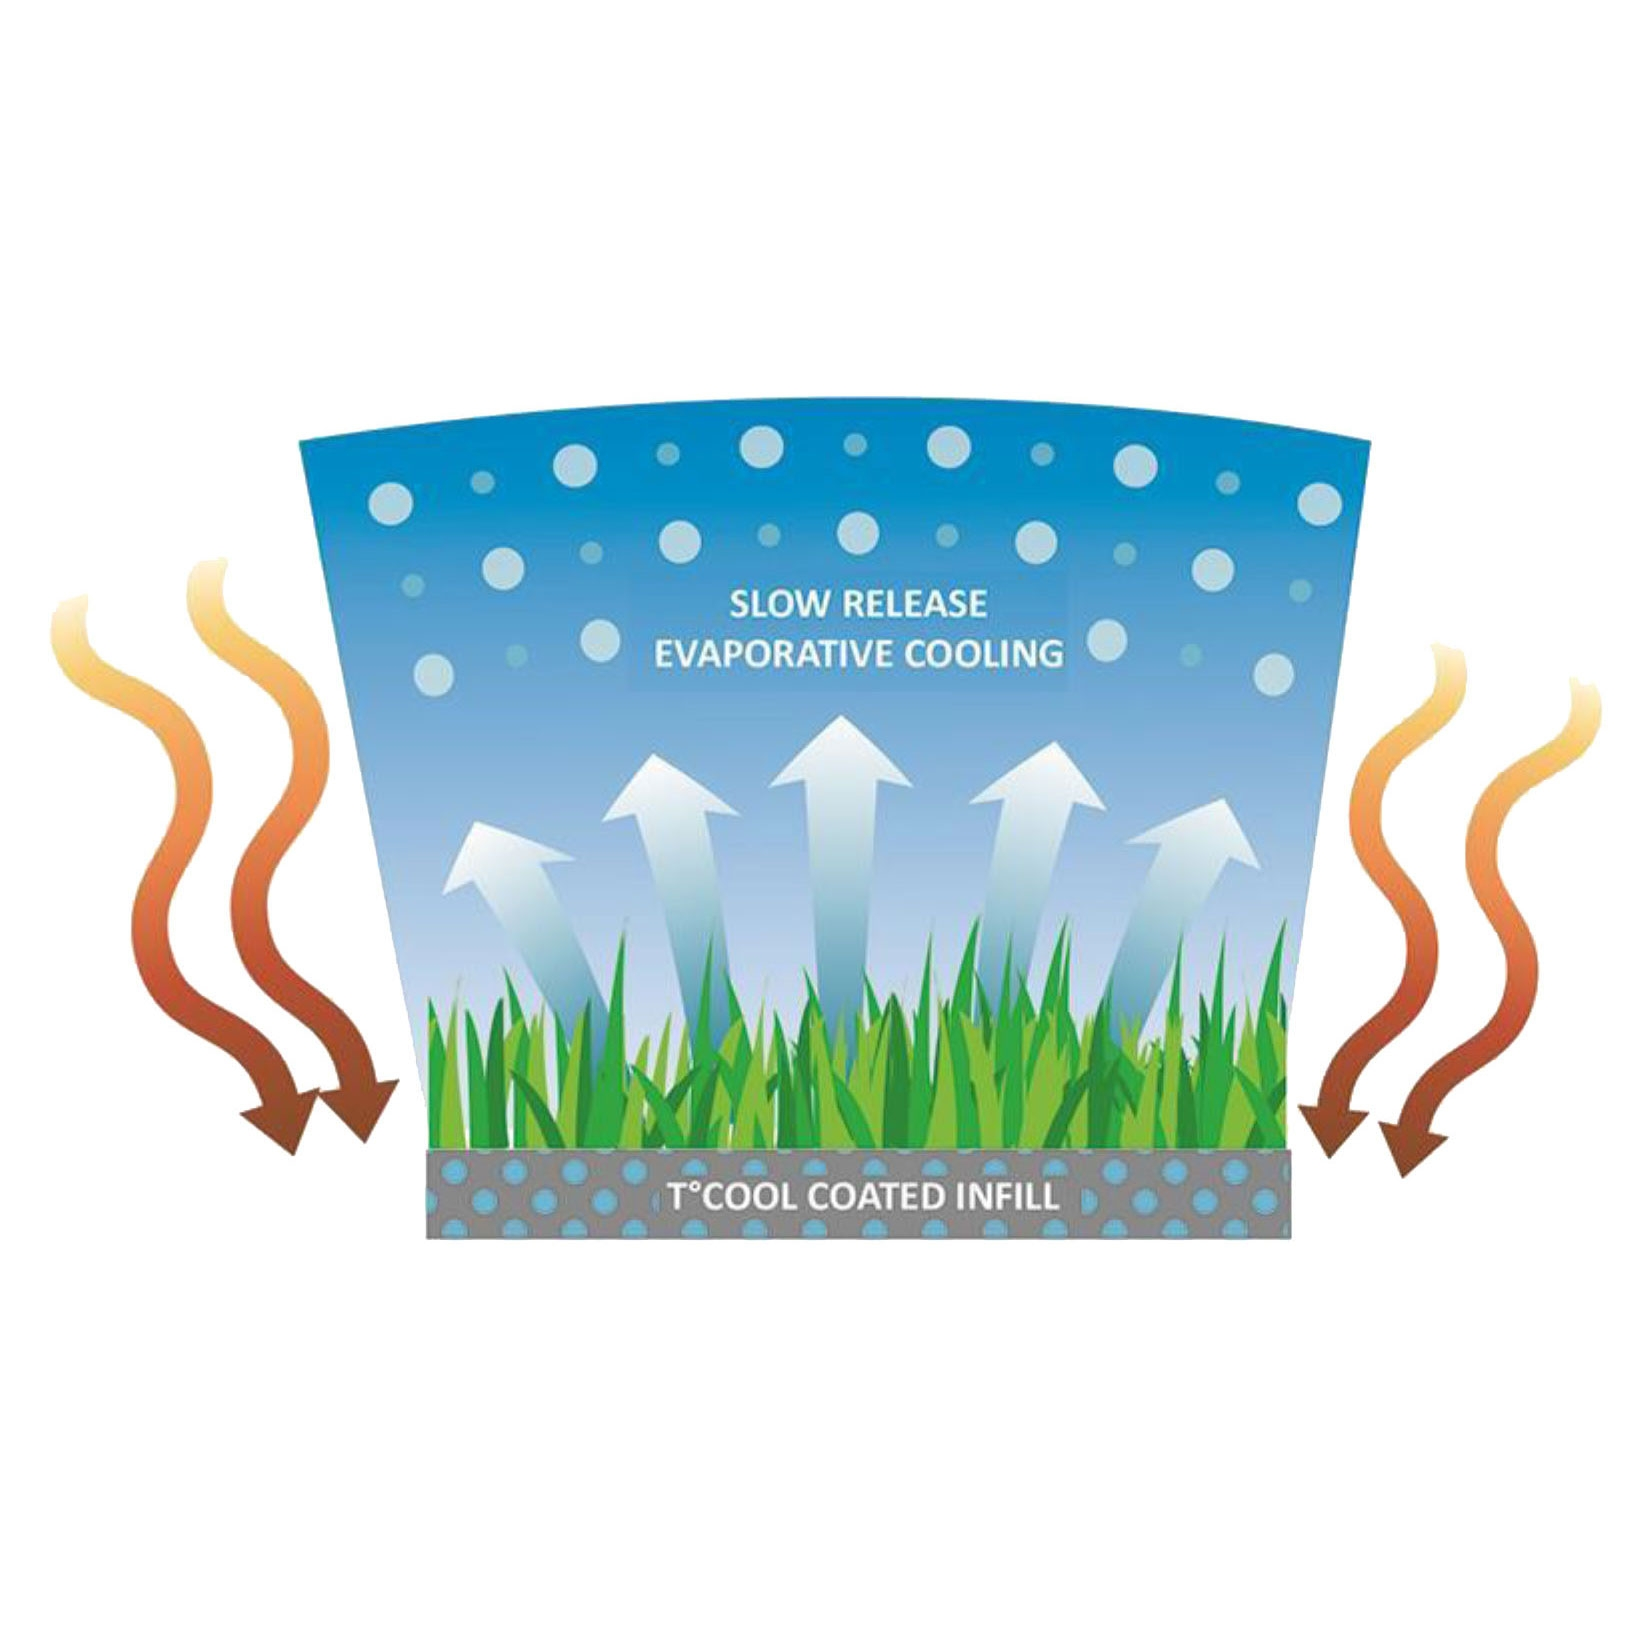 TCool Infill Artificial Grass Evaporative Cooling System